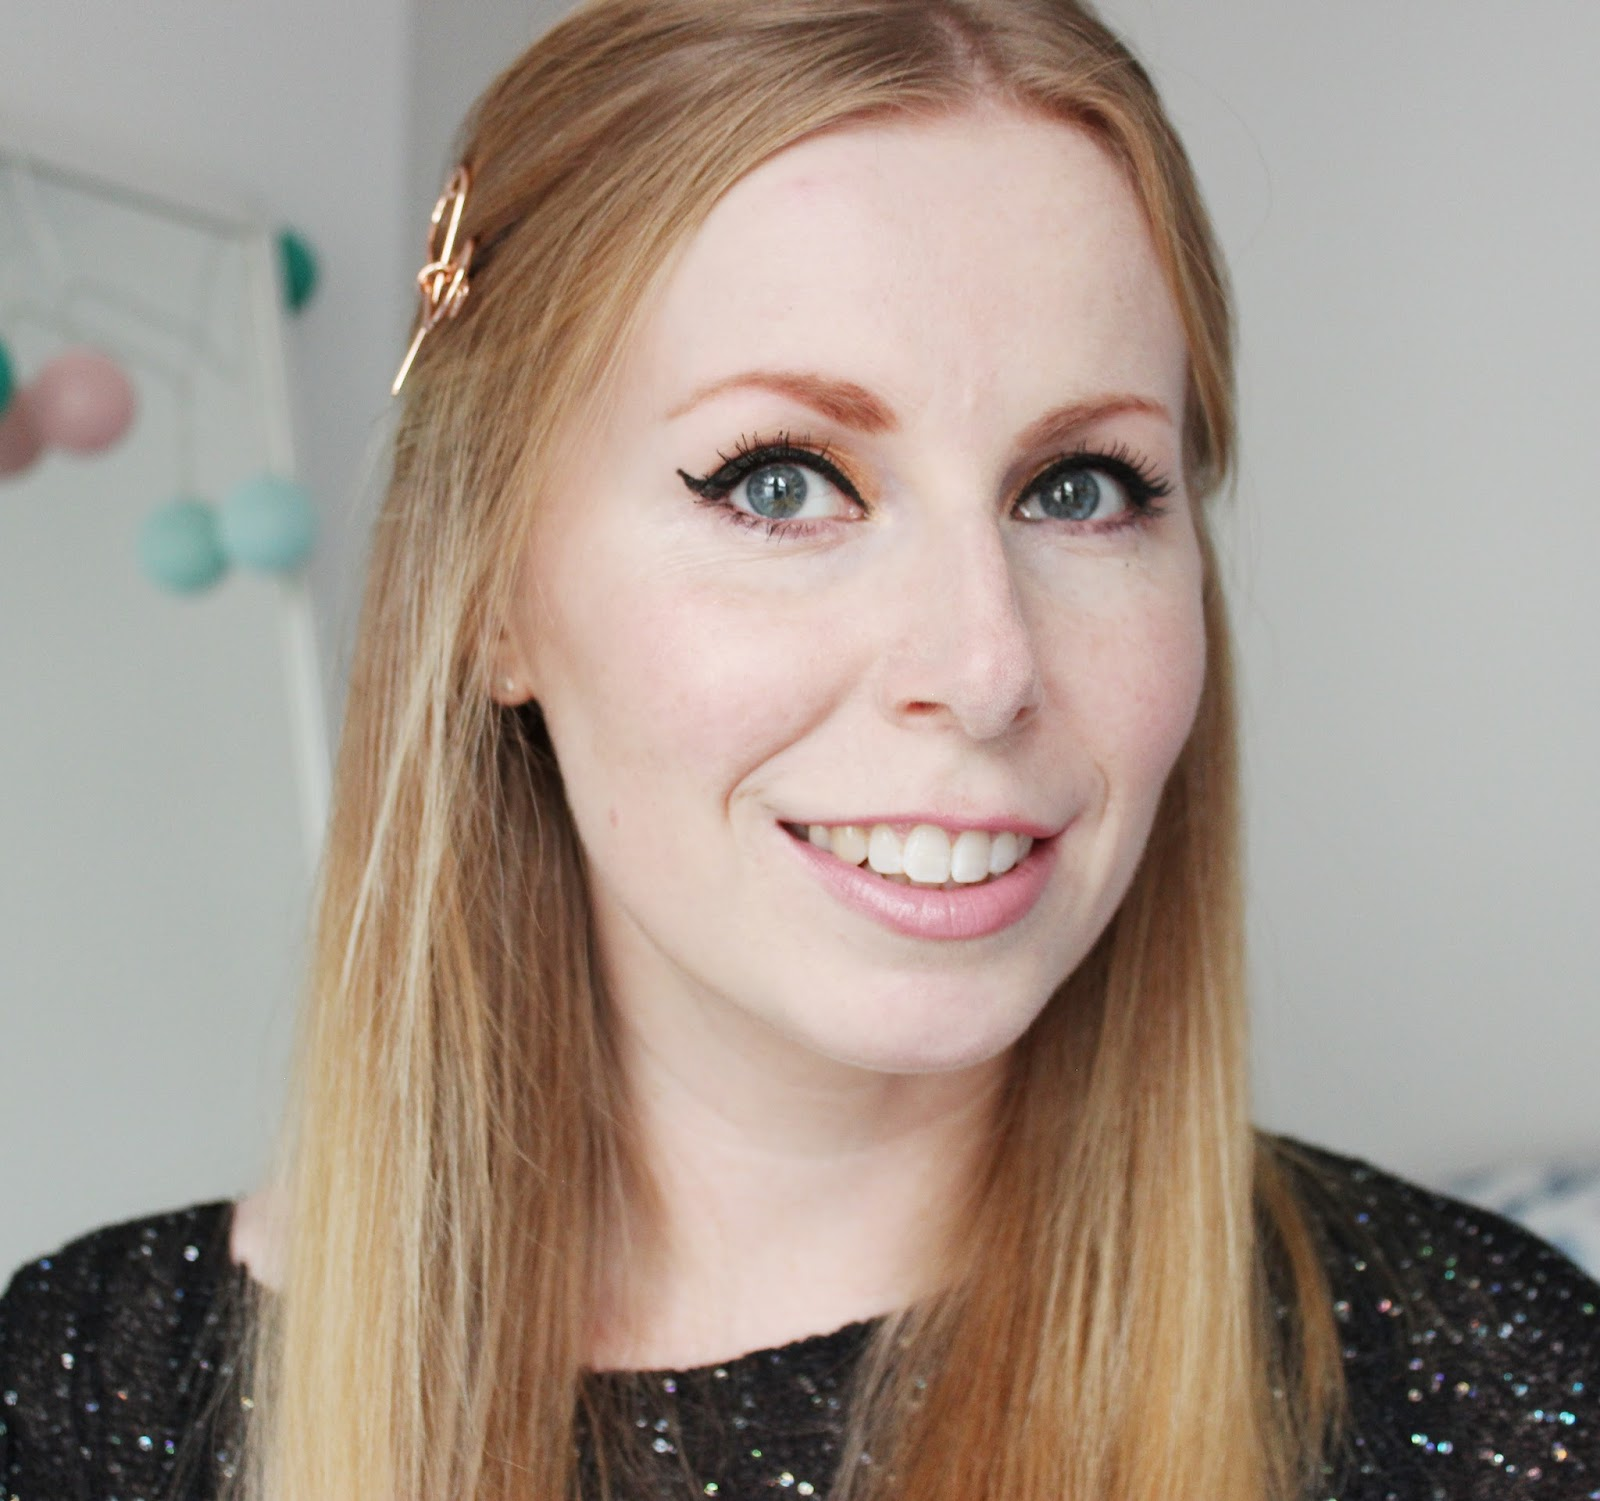 GHD Copper Luxe Platinum Styler review and party hairstyles